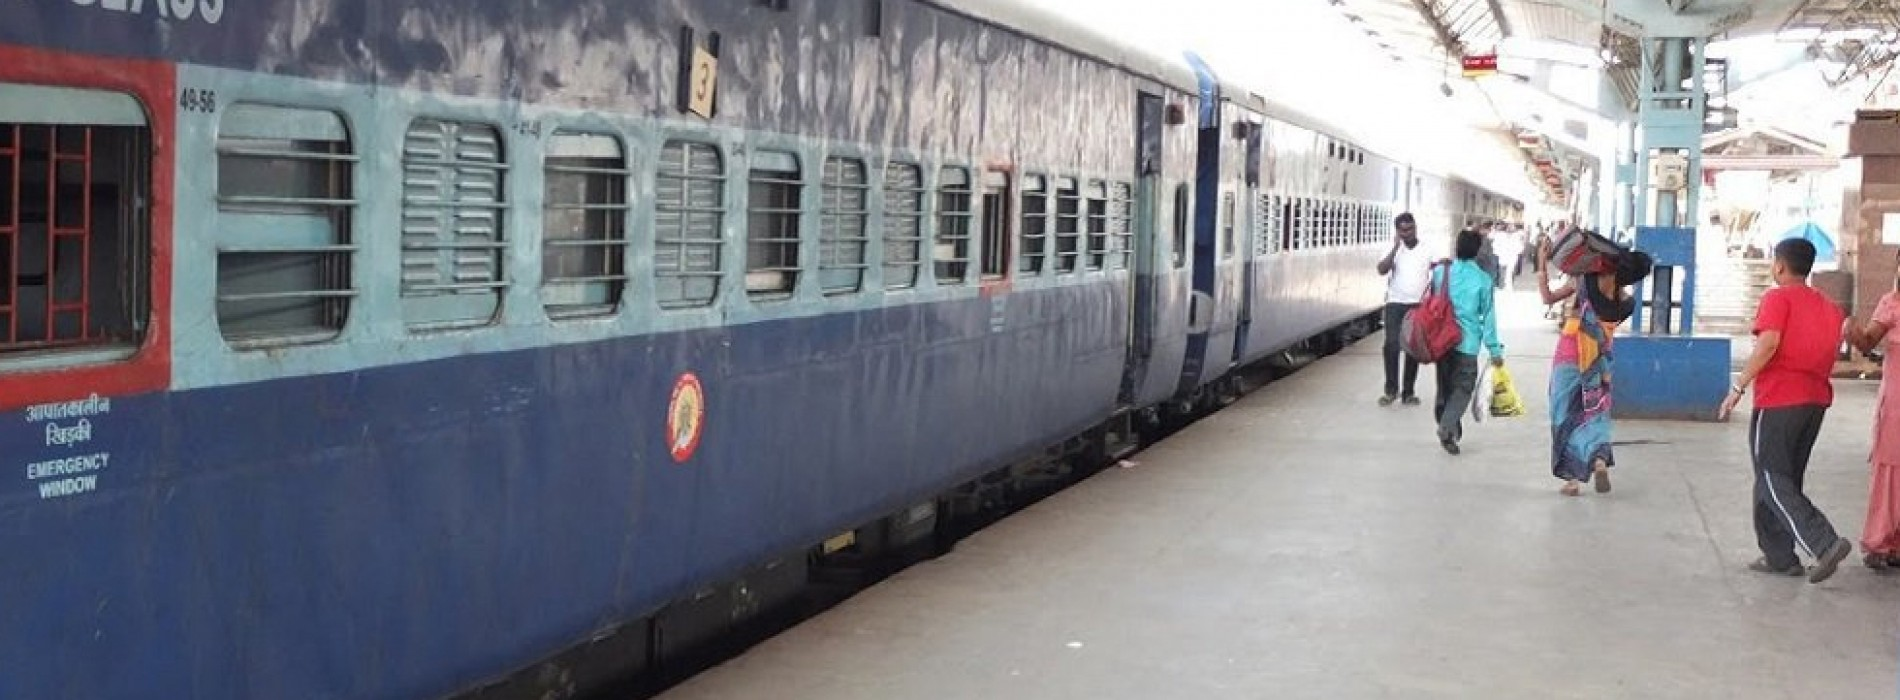 Indian Railways considering Metro-like self-propelled trains for high-speed corridors